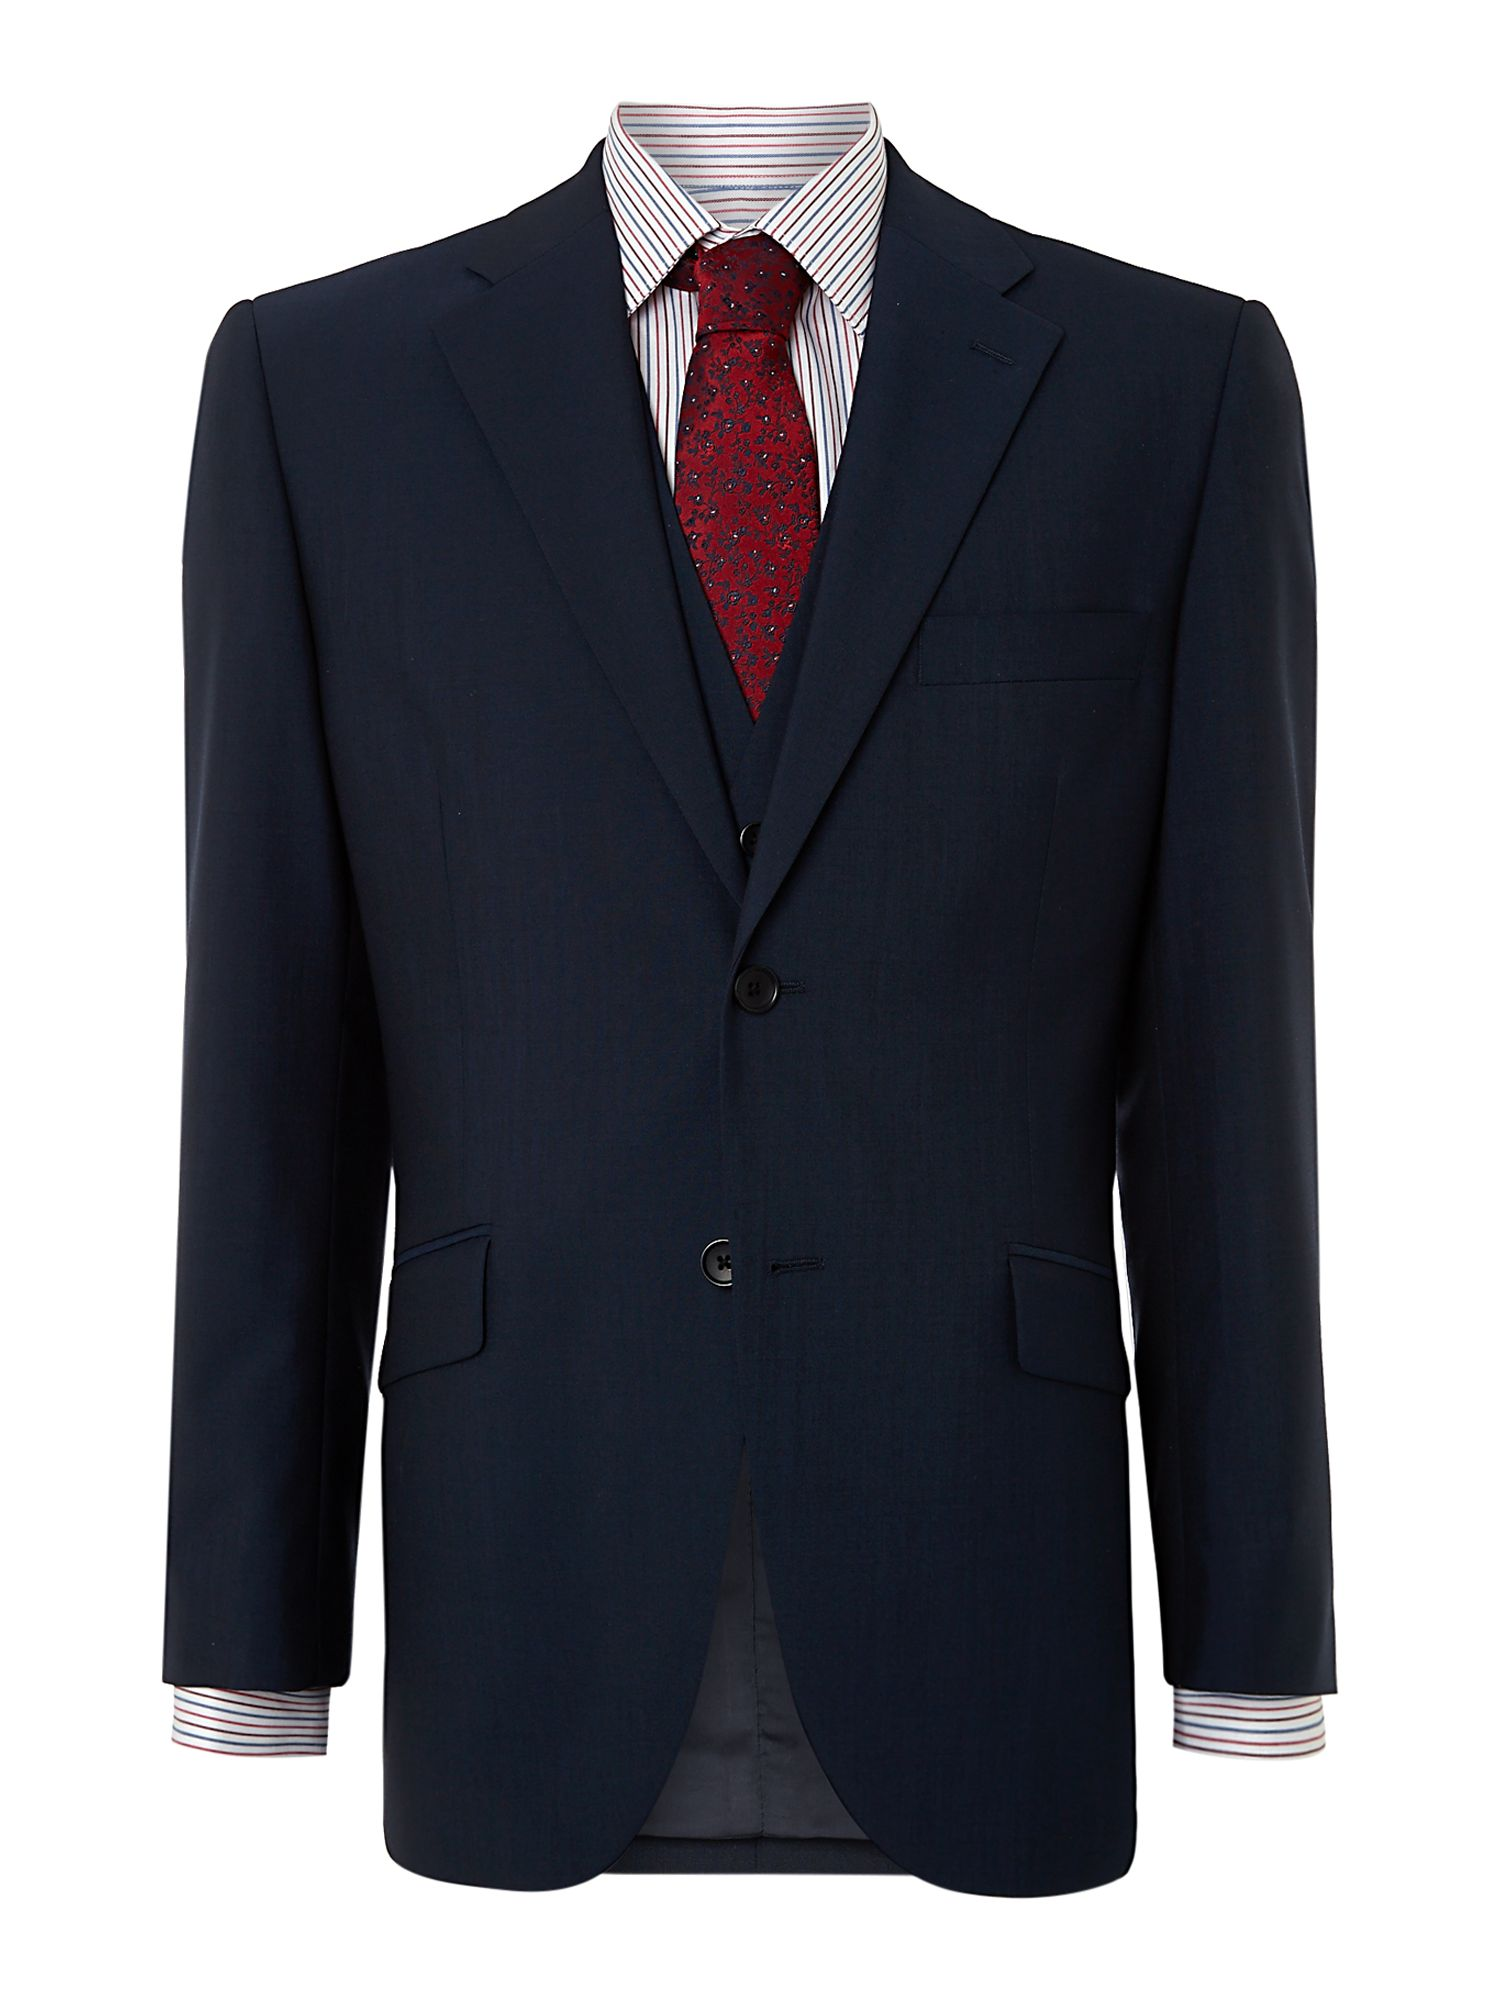 Draper panama notch lapel suit jacket